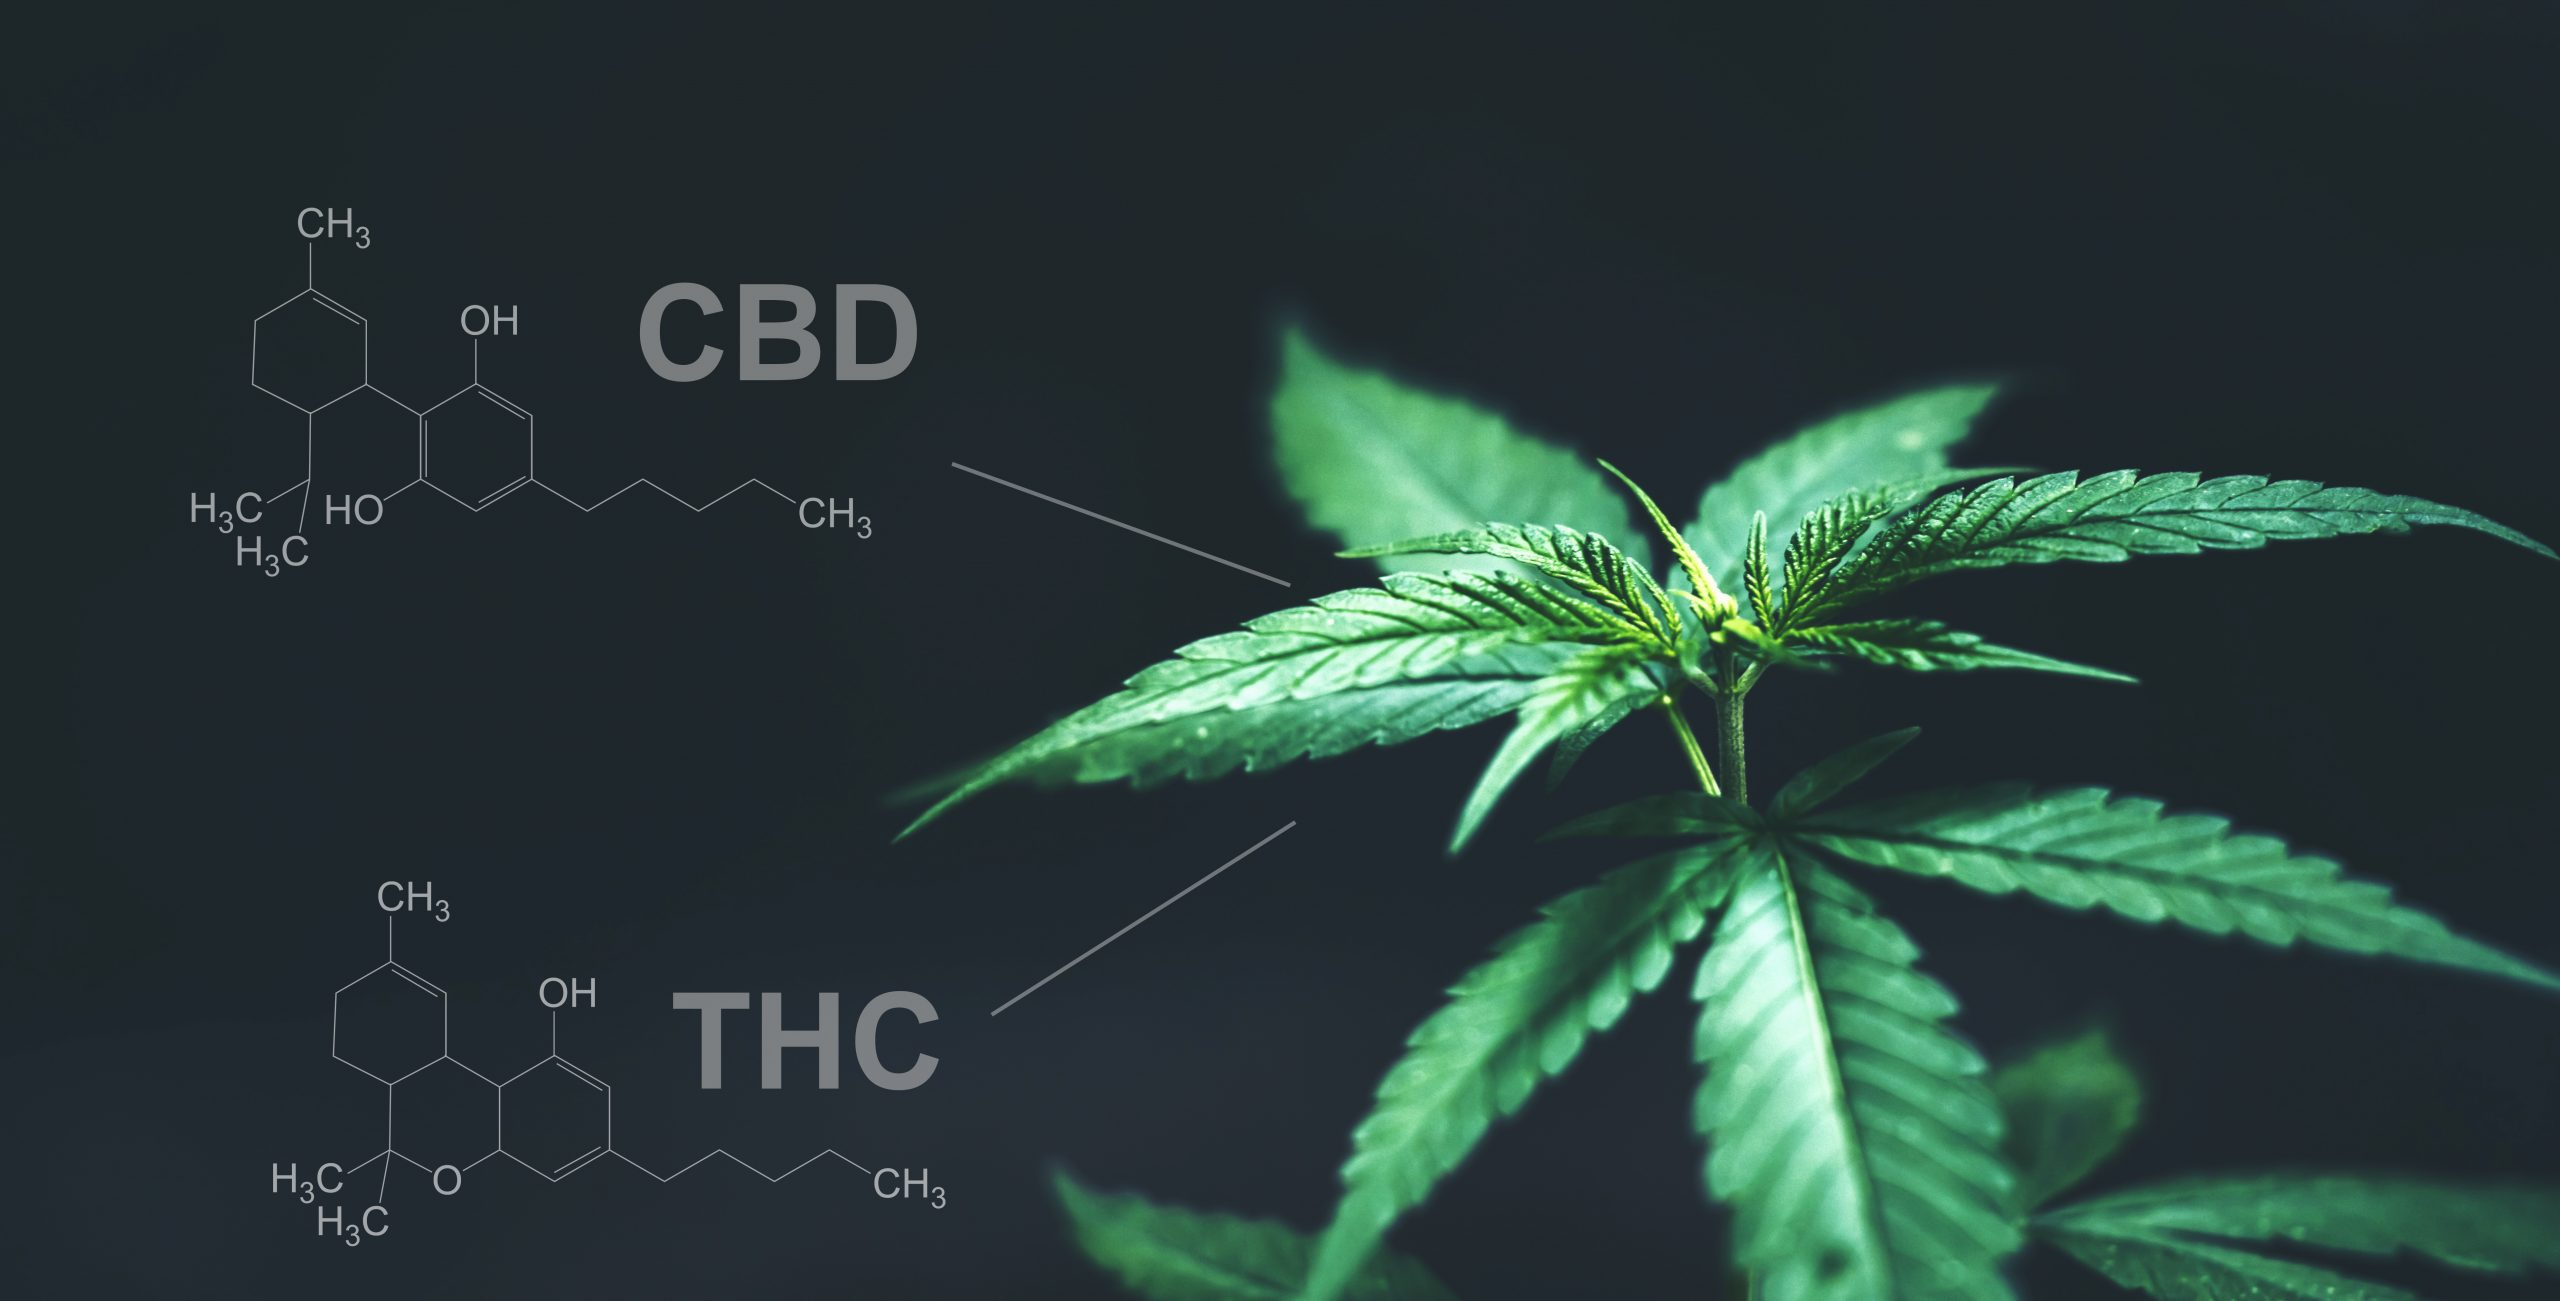 The Entourage Effect: Why THC and CBD Are Better Together